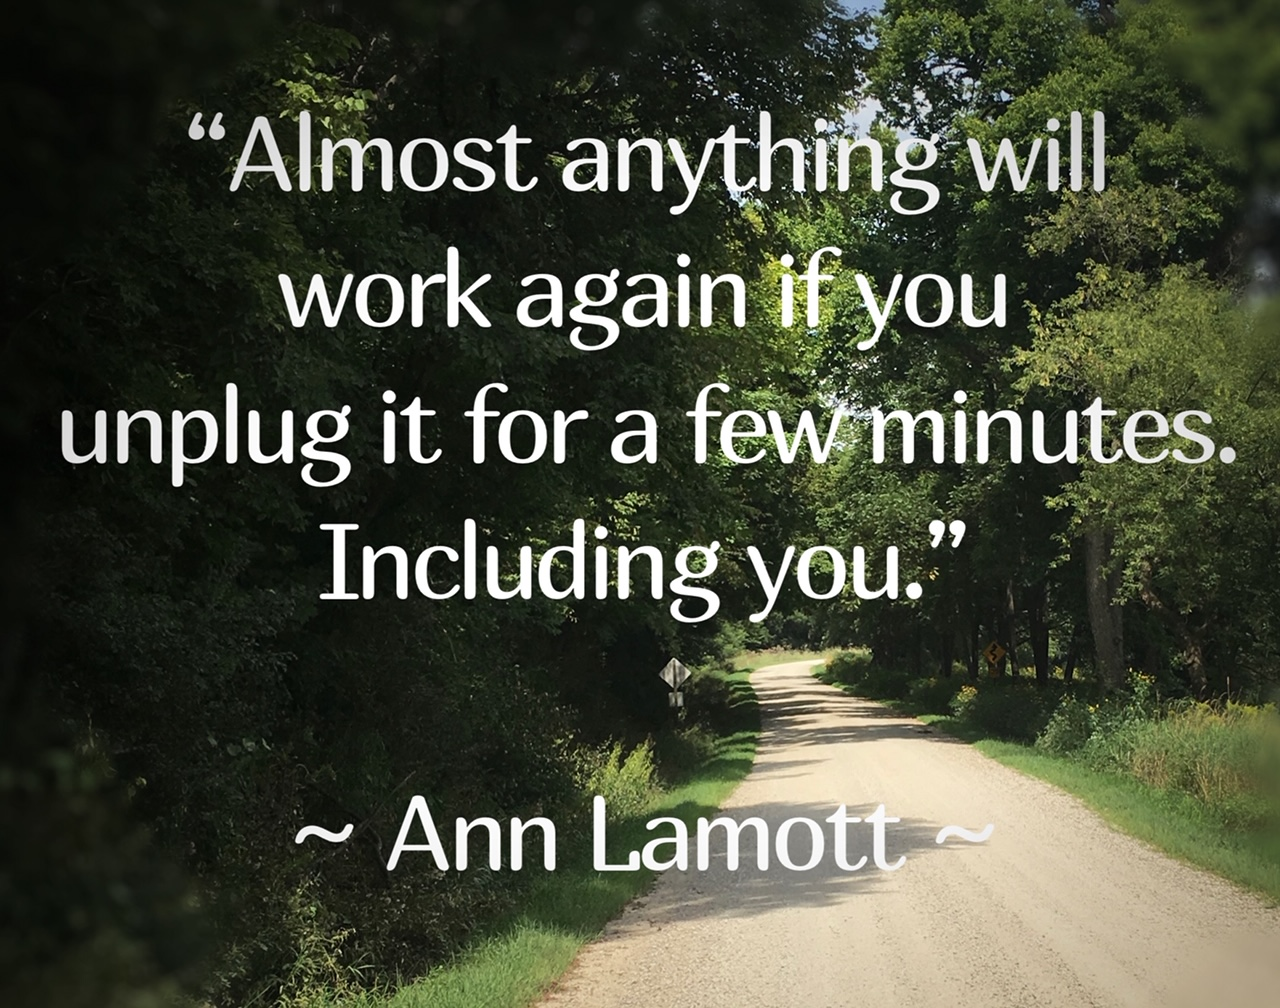 Anne Lamott is an American novelist and non-fiction writer.  She is also a progressive political activist, public speaker, and writing teacher.